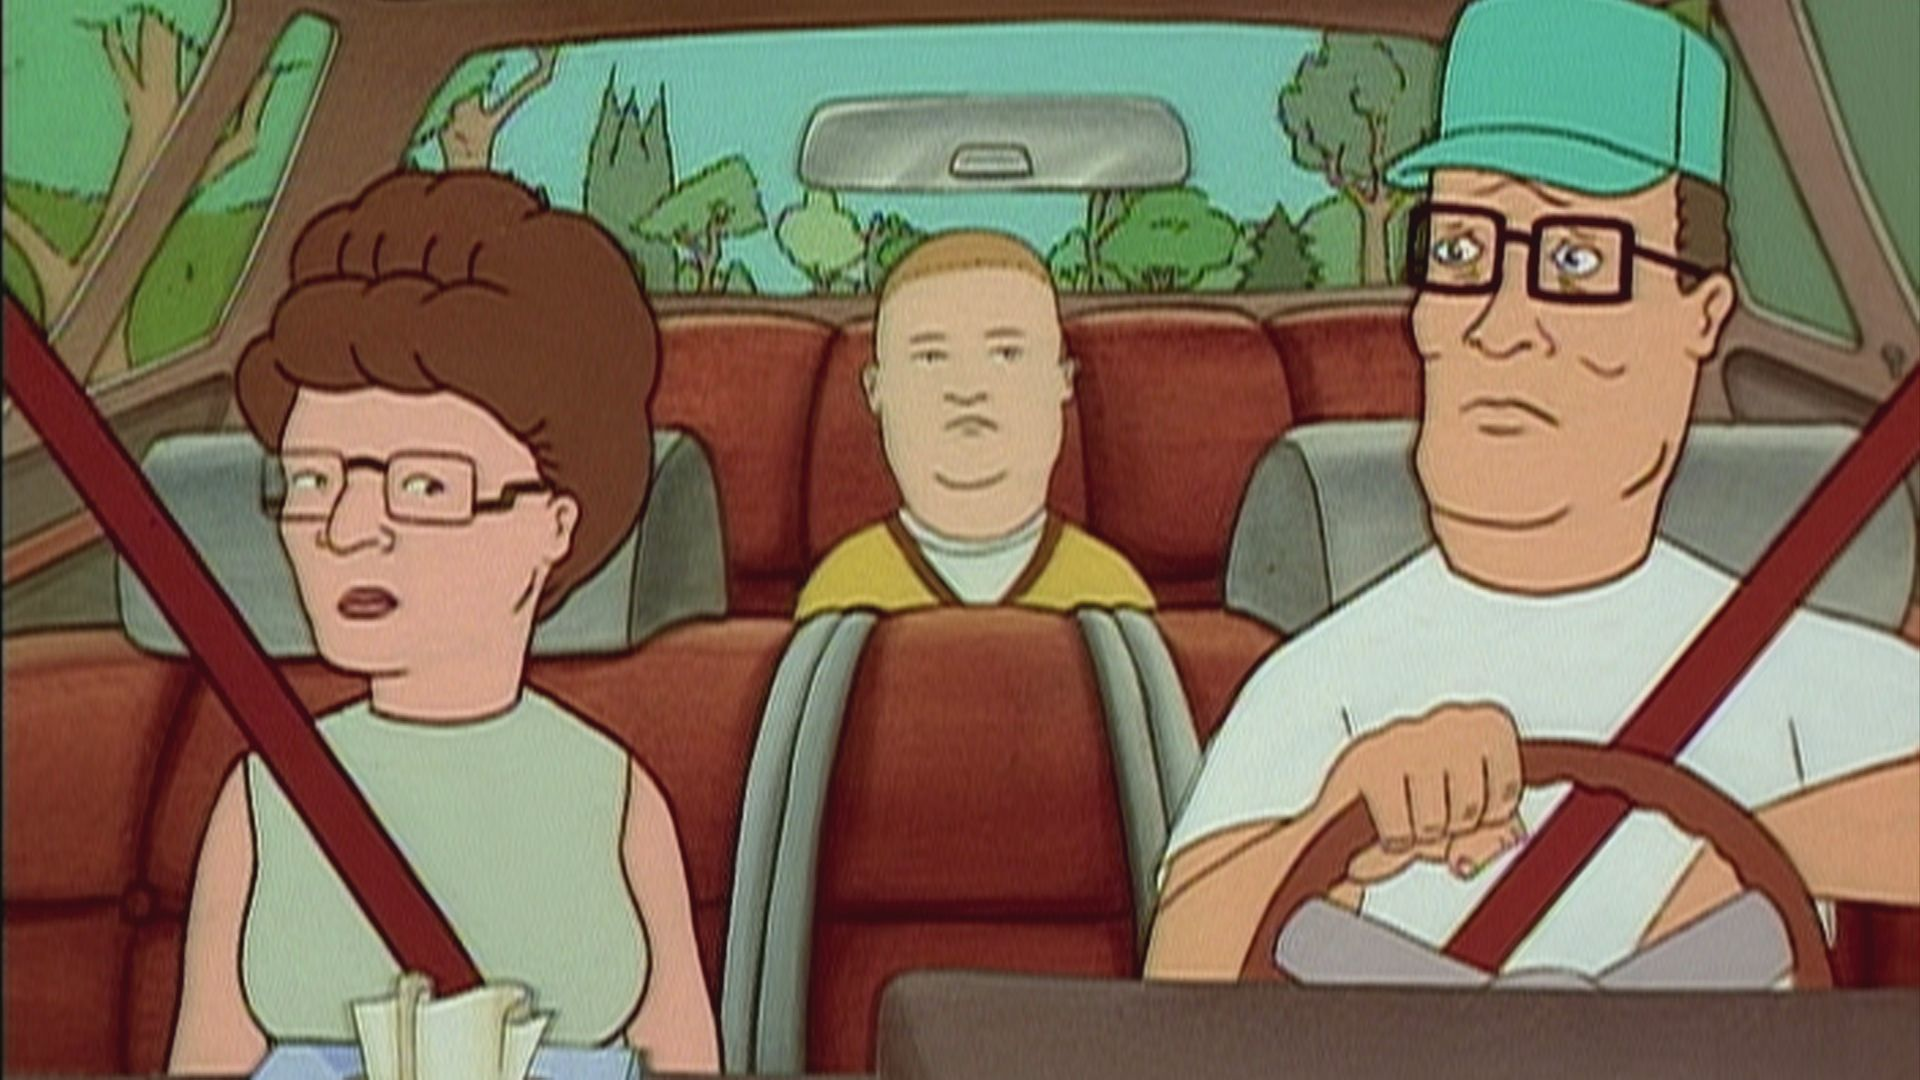 King of the Hill - Season 1, Ep. 1 - Pilot - Full Episode | Comedy ...